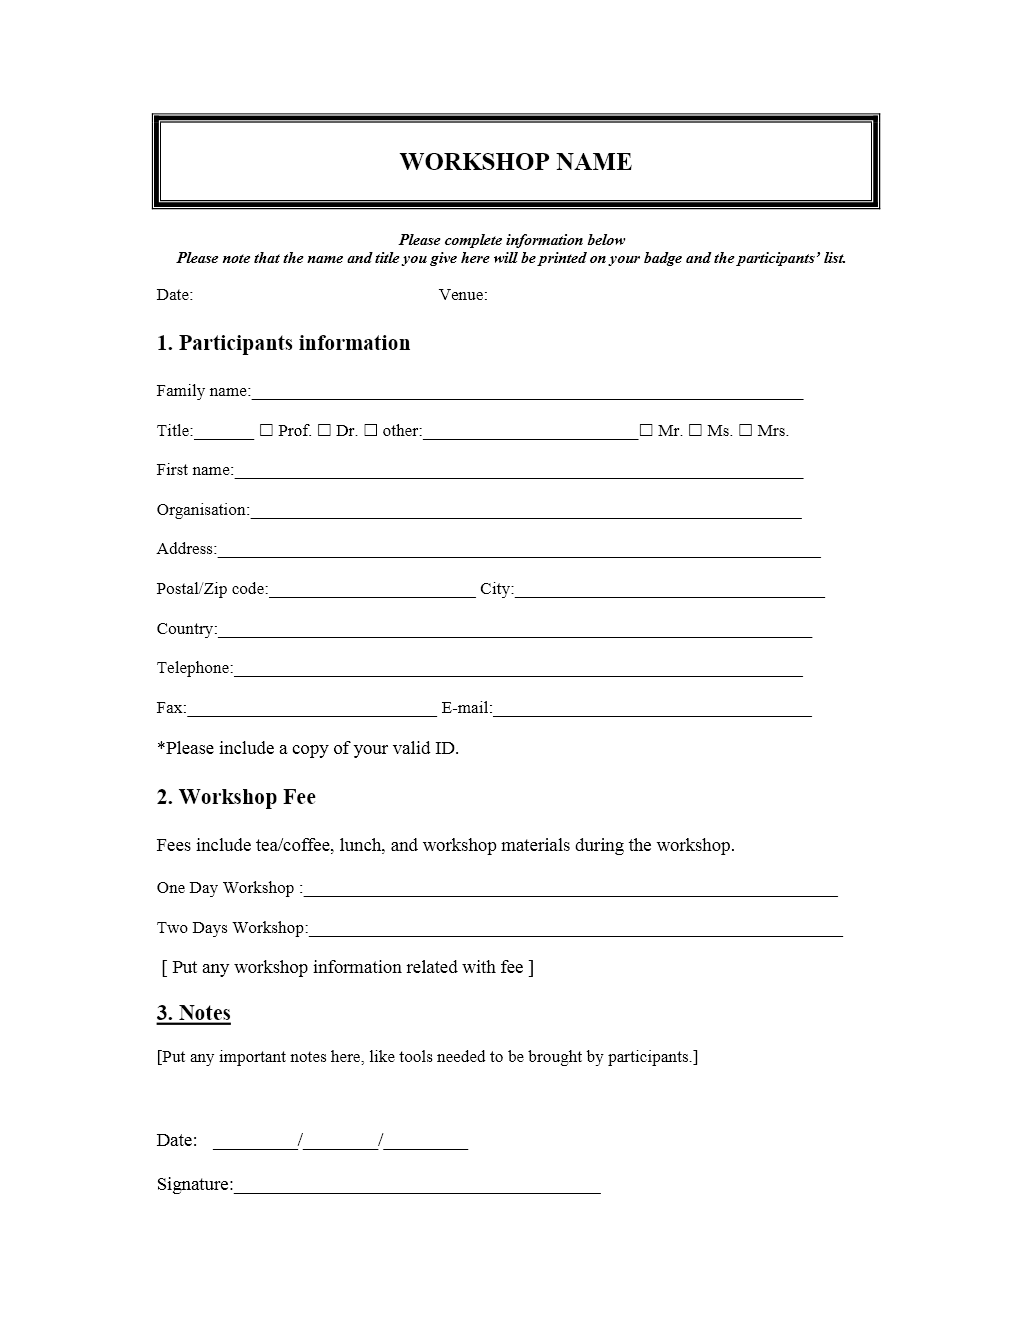 Registration form template free download charlotte clergy coalition registration forms templates free download aprilonthemarch maxwellsz